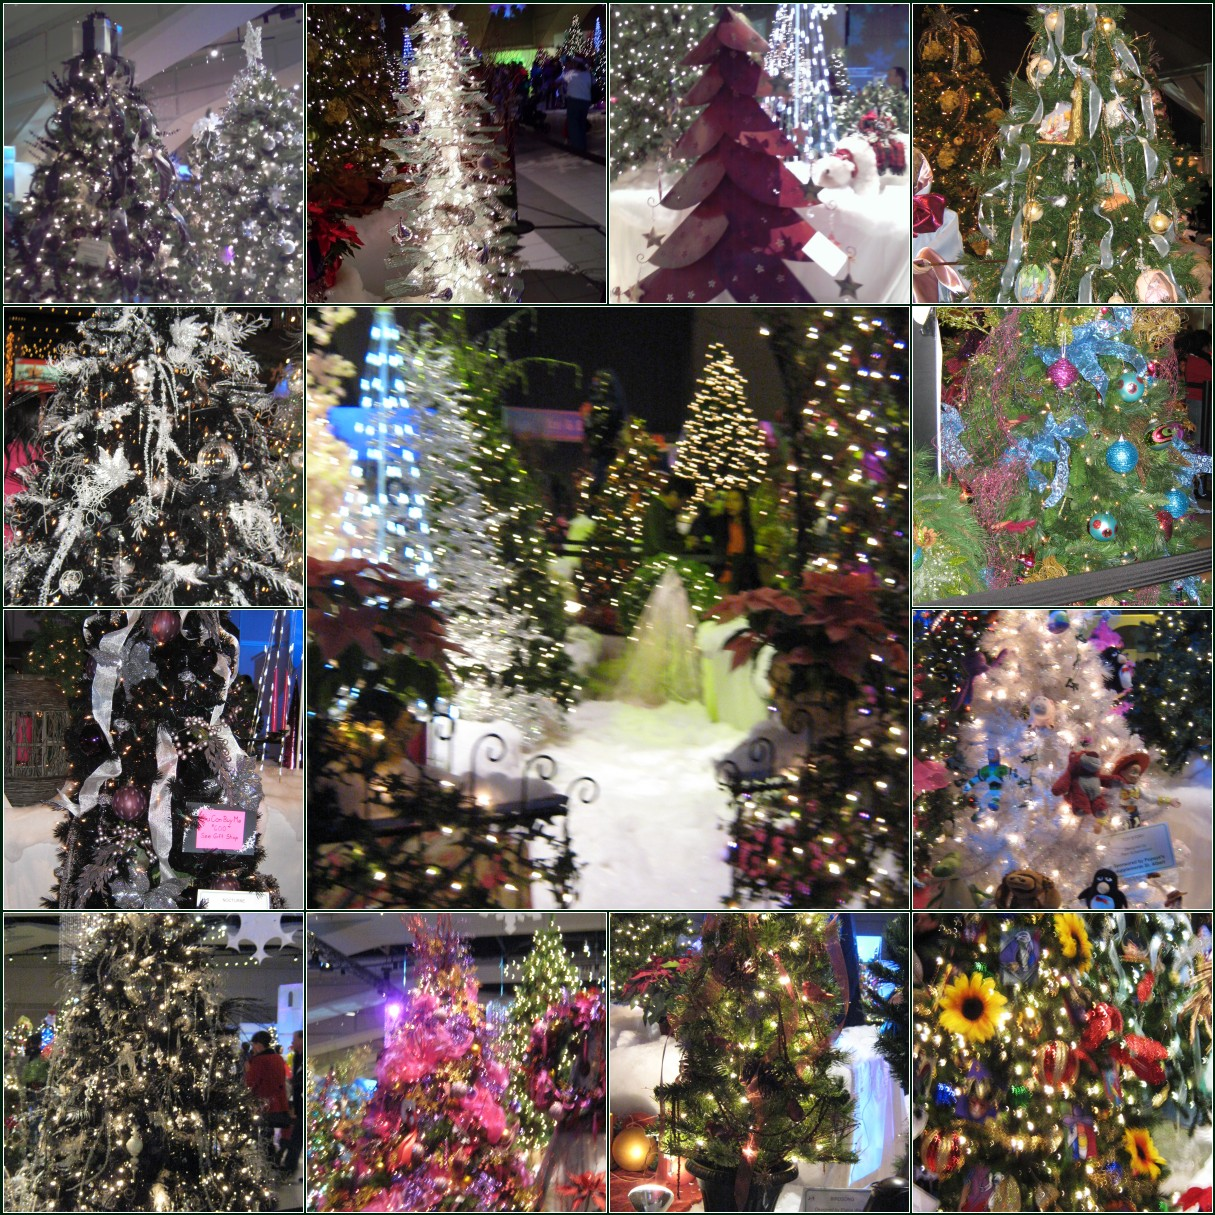 How To Decorate A Christmas Tree Video: LIVING THE GARDENING LIFE: How To Decorate A Christmas